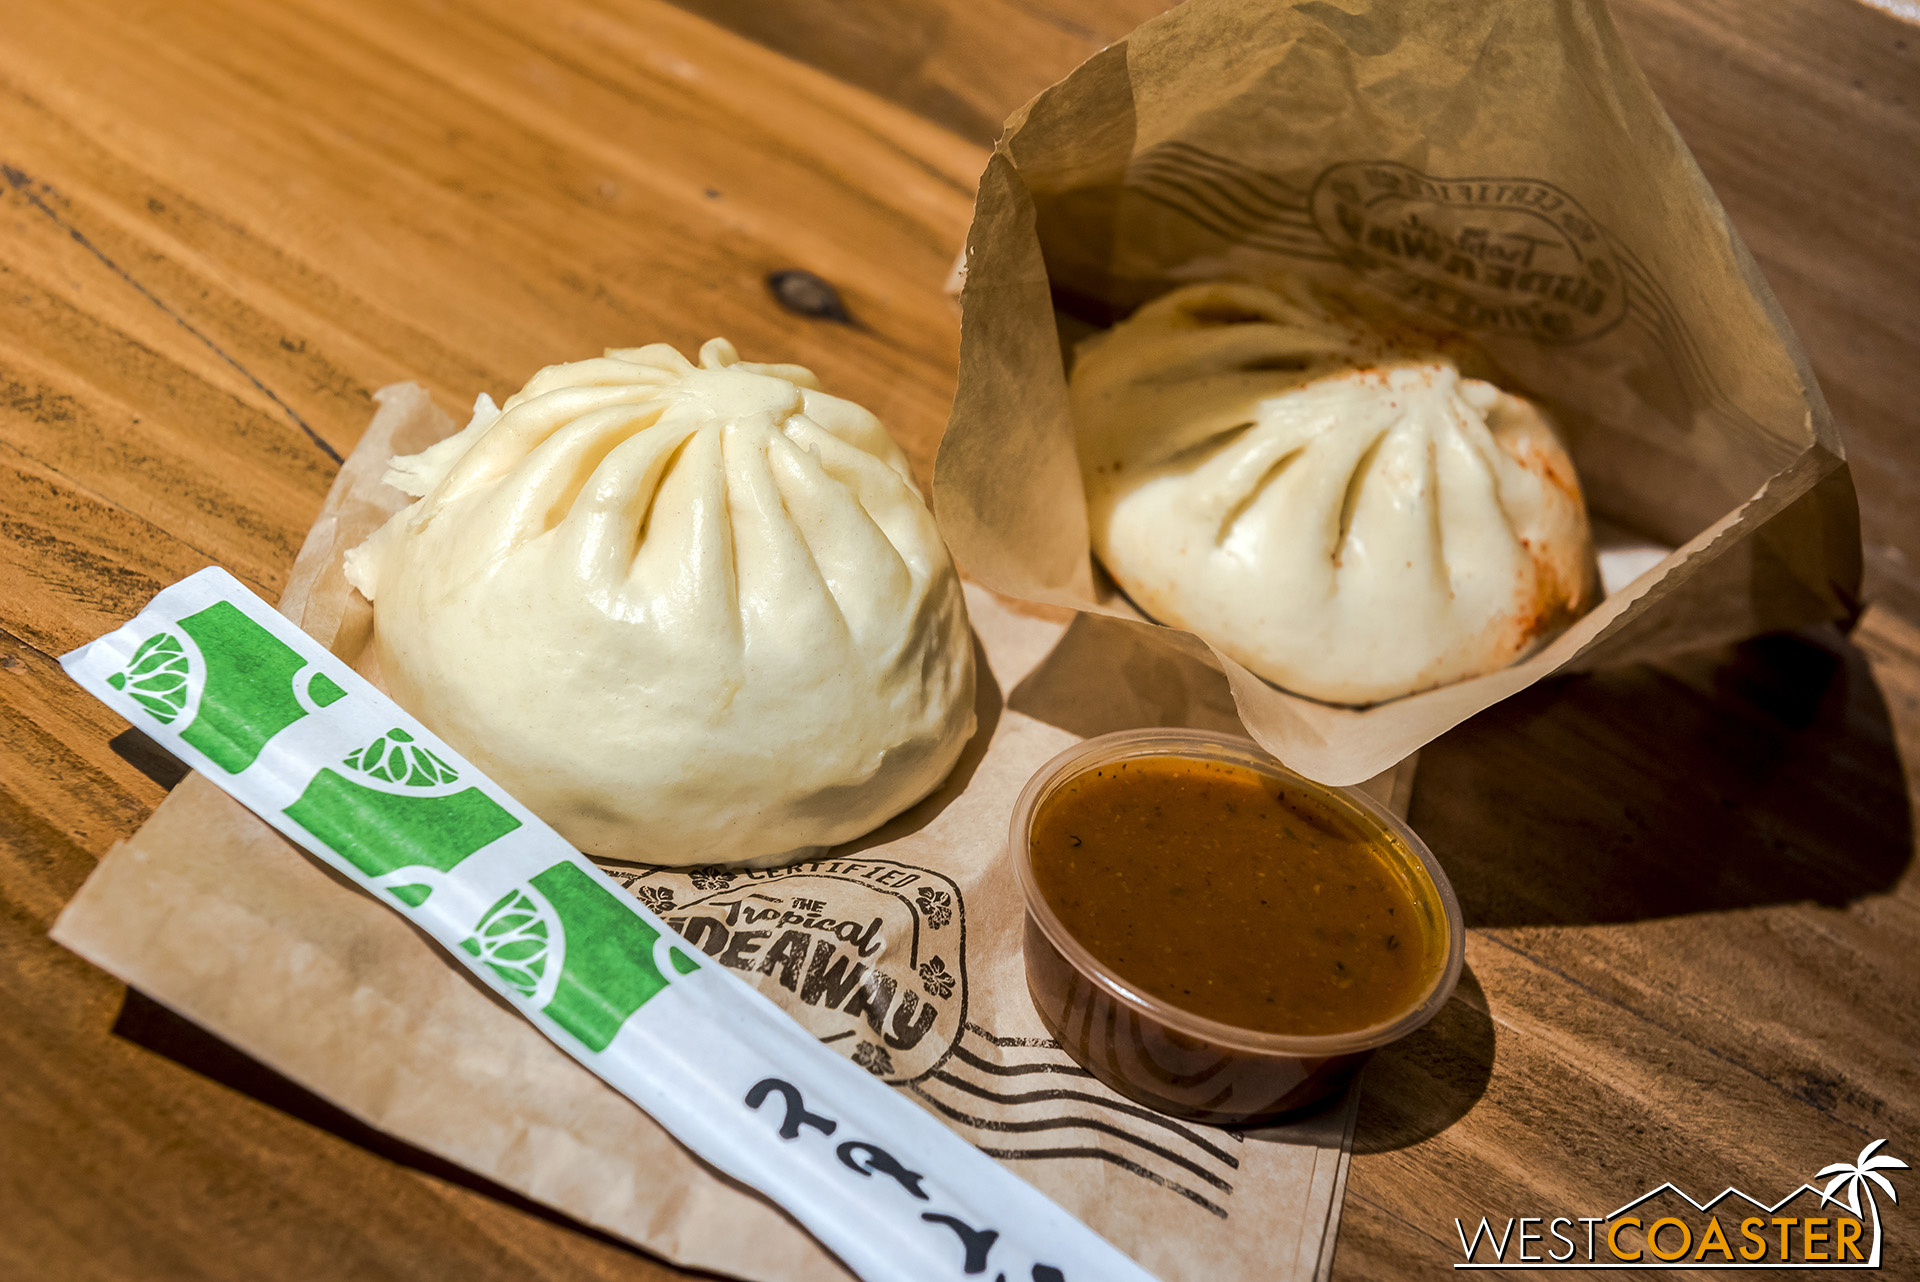 I tried the Bulgogi Beef Bao with Sweet Chilies, Potatoes and the Spiced Vegetable Bao with Chickpeas, Braised Vegetables.